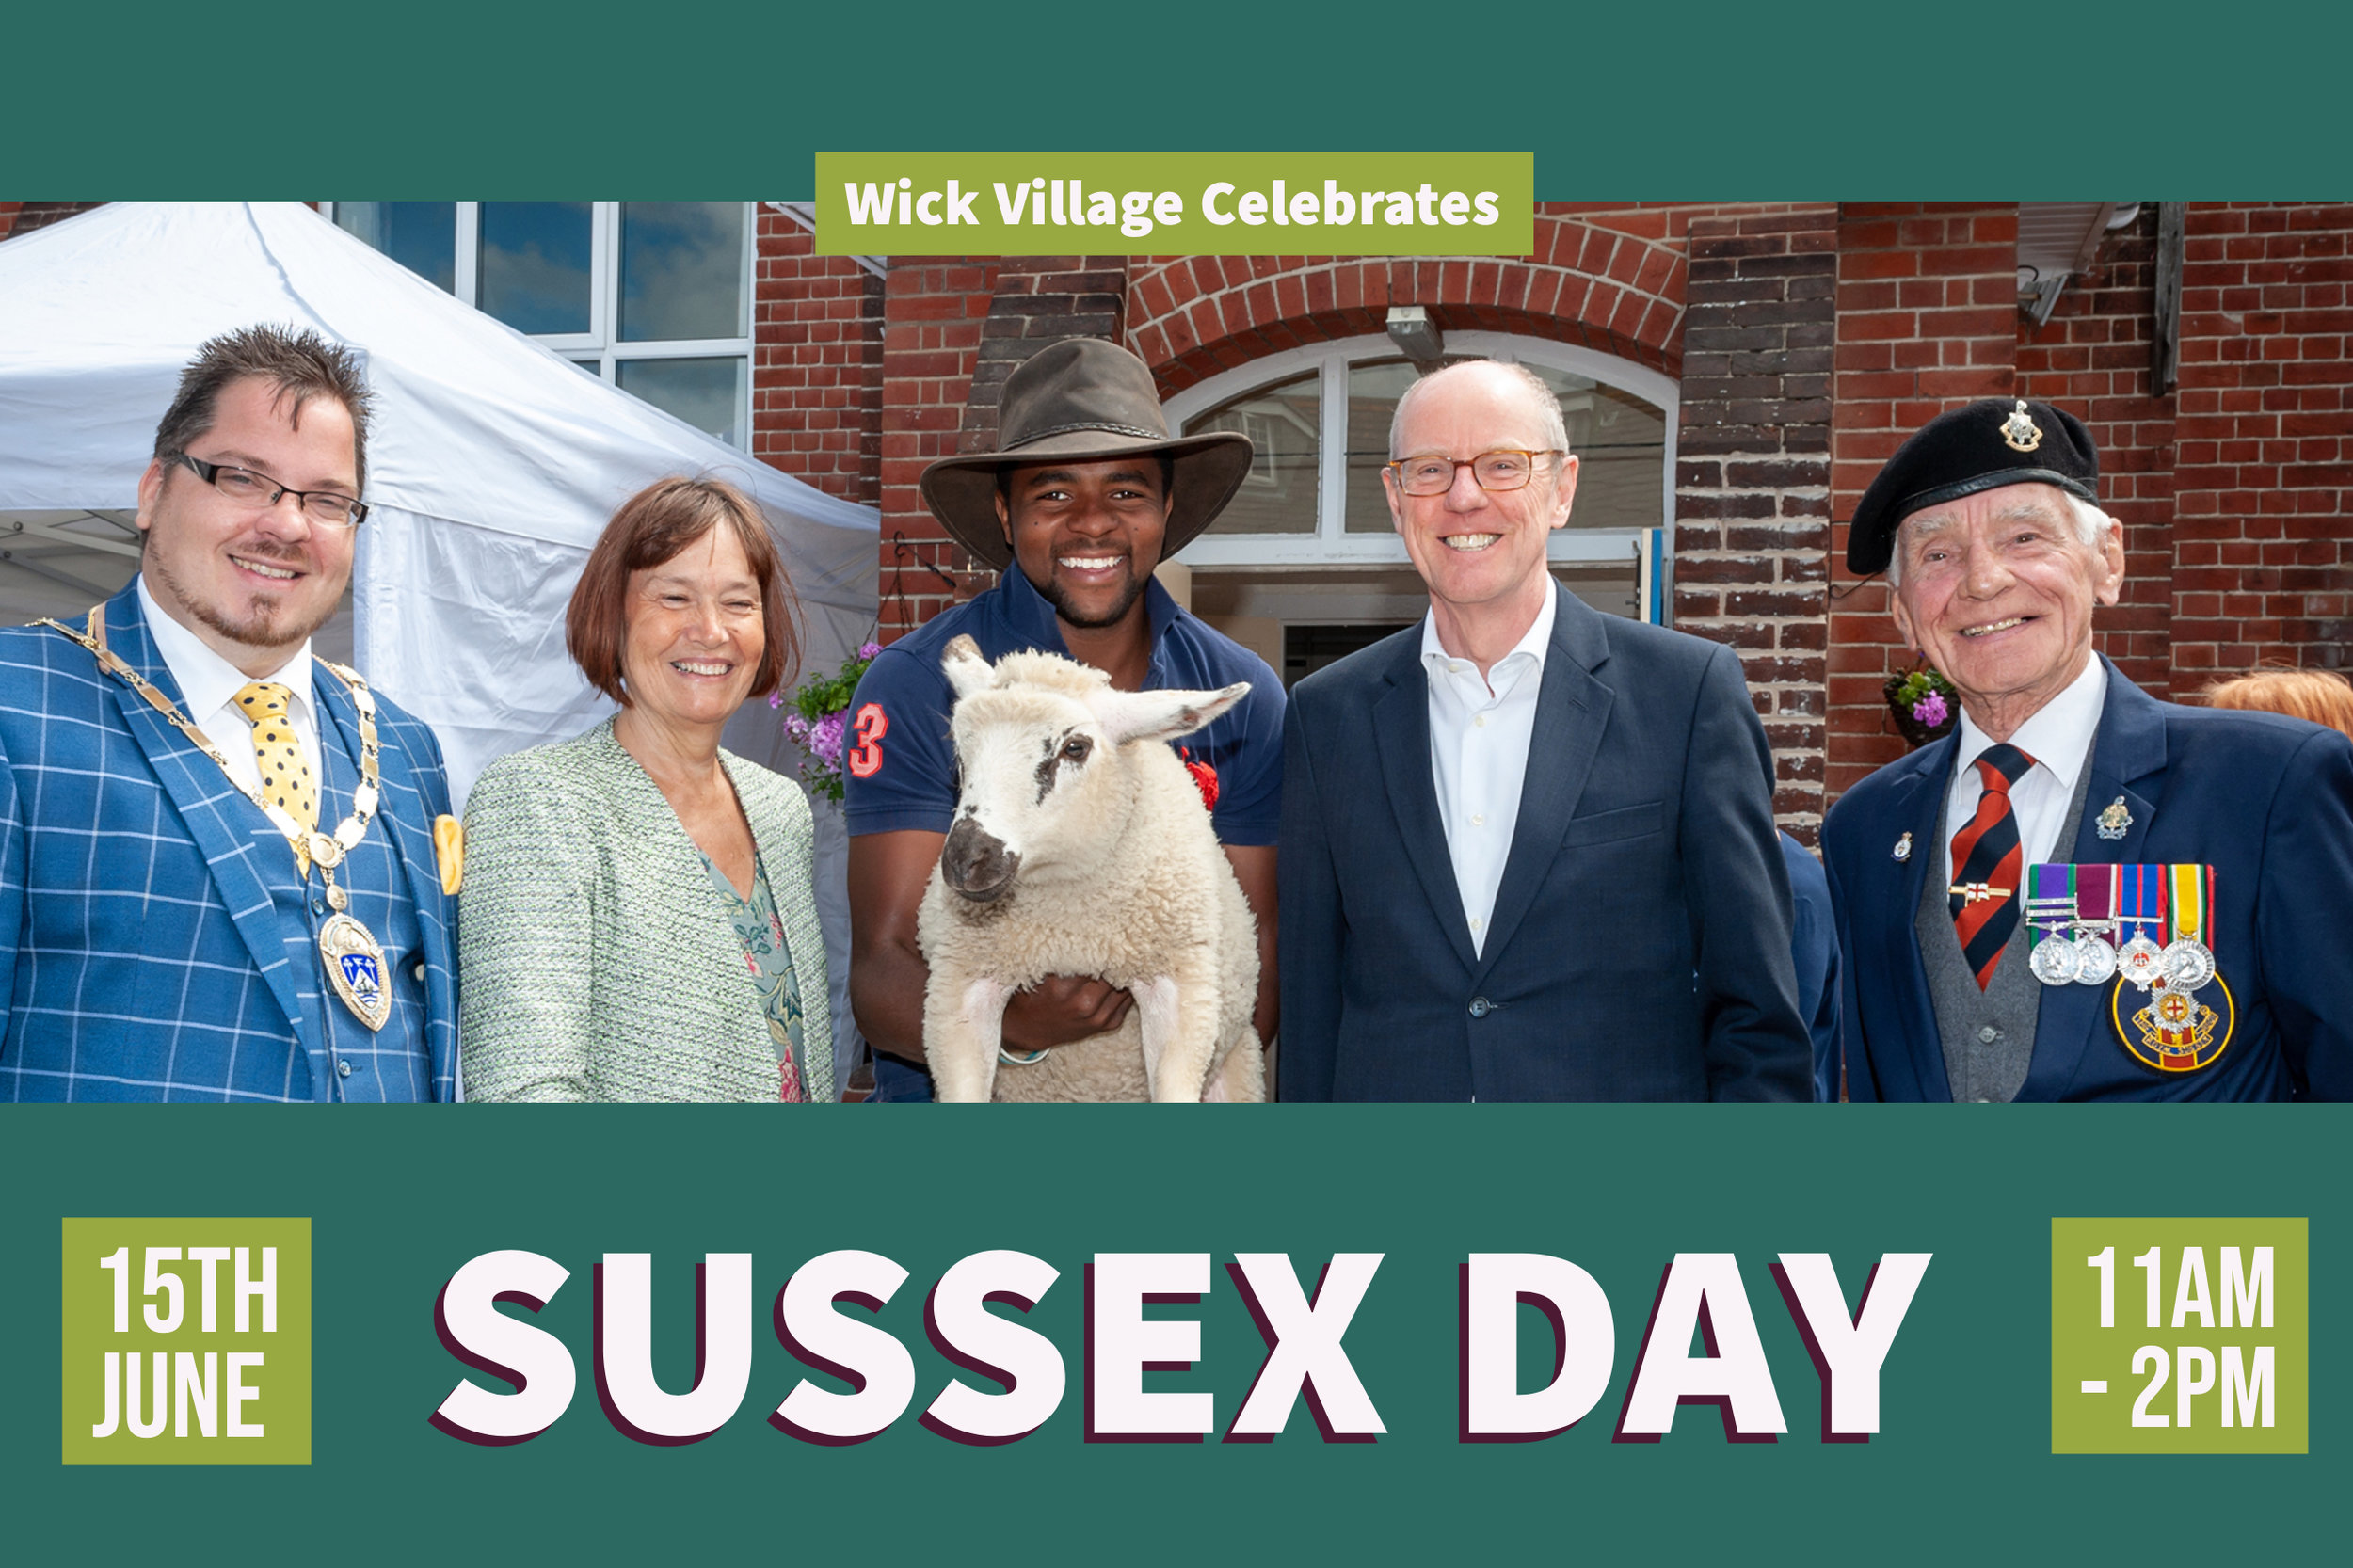 Sussex Day celebrations at Wick Village.